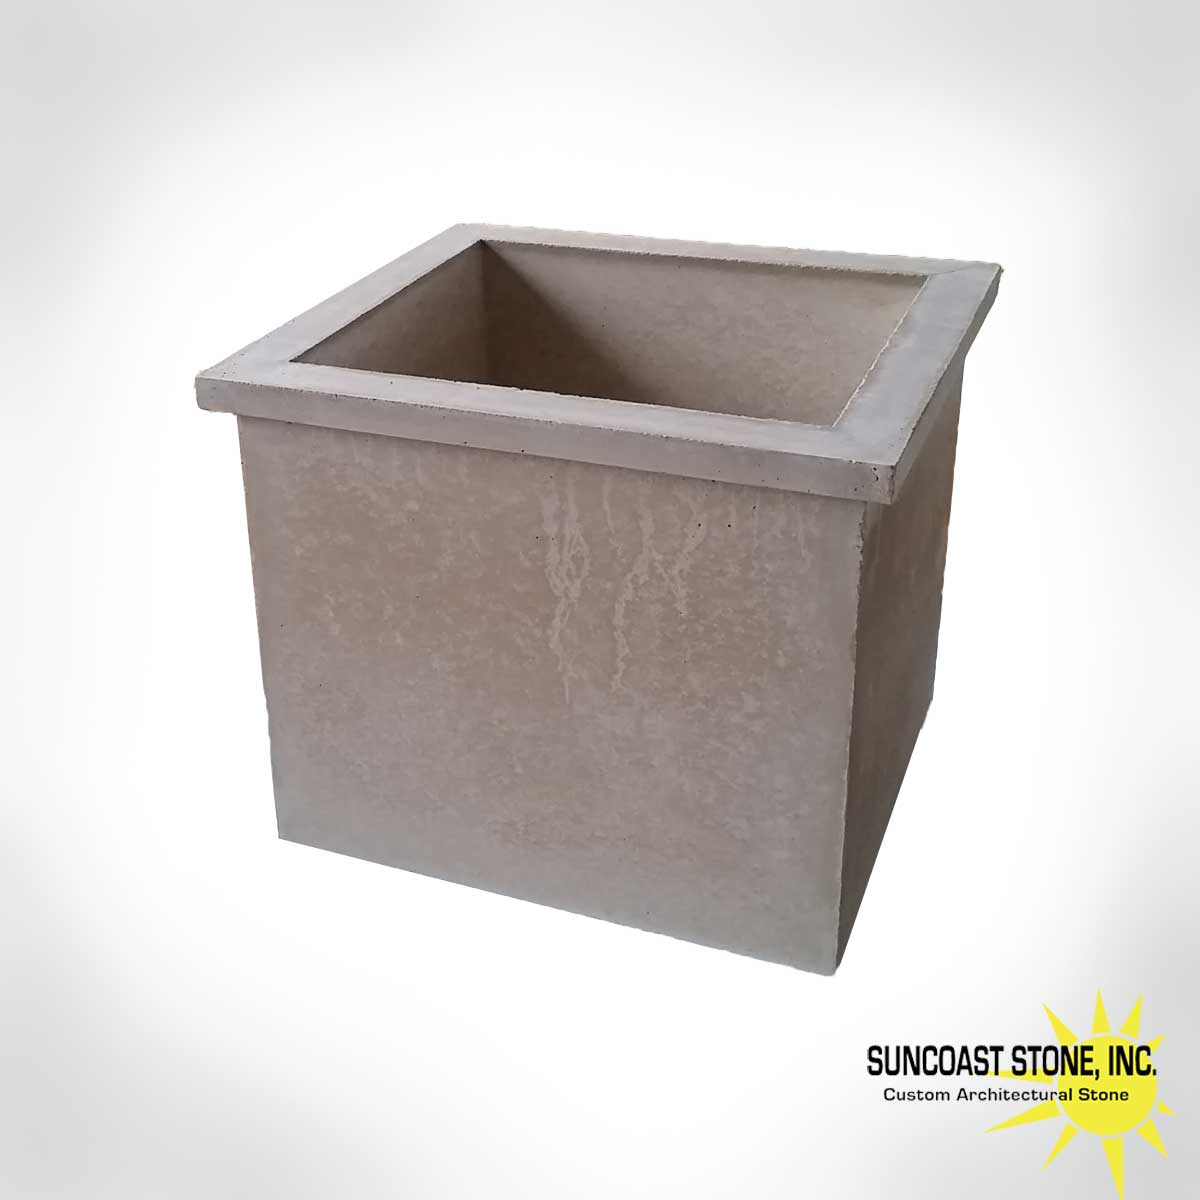 Square Concrete Planter Pot1 Modern Rectangular Concrete Planter With Lip 18x16